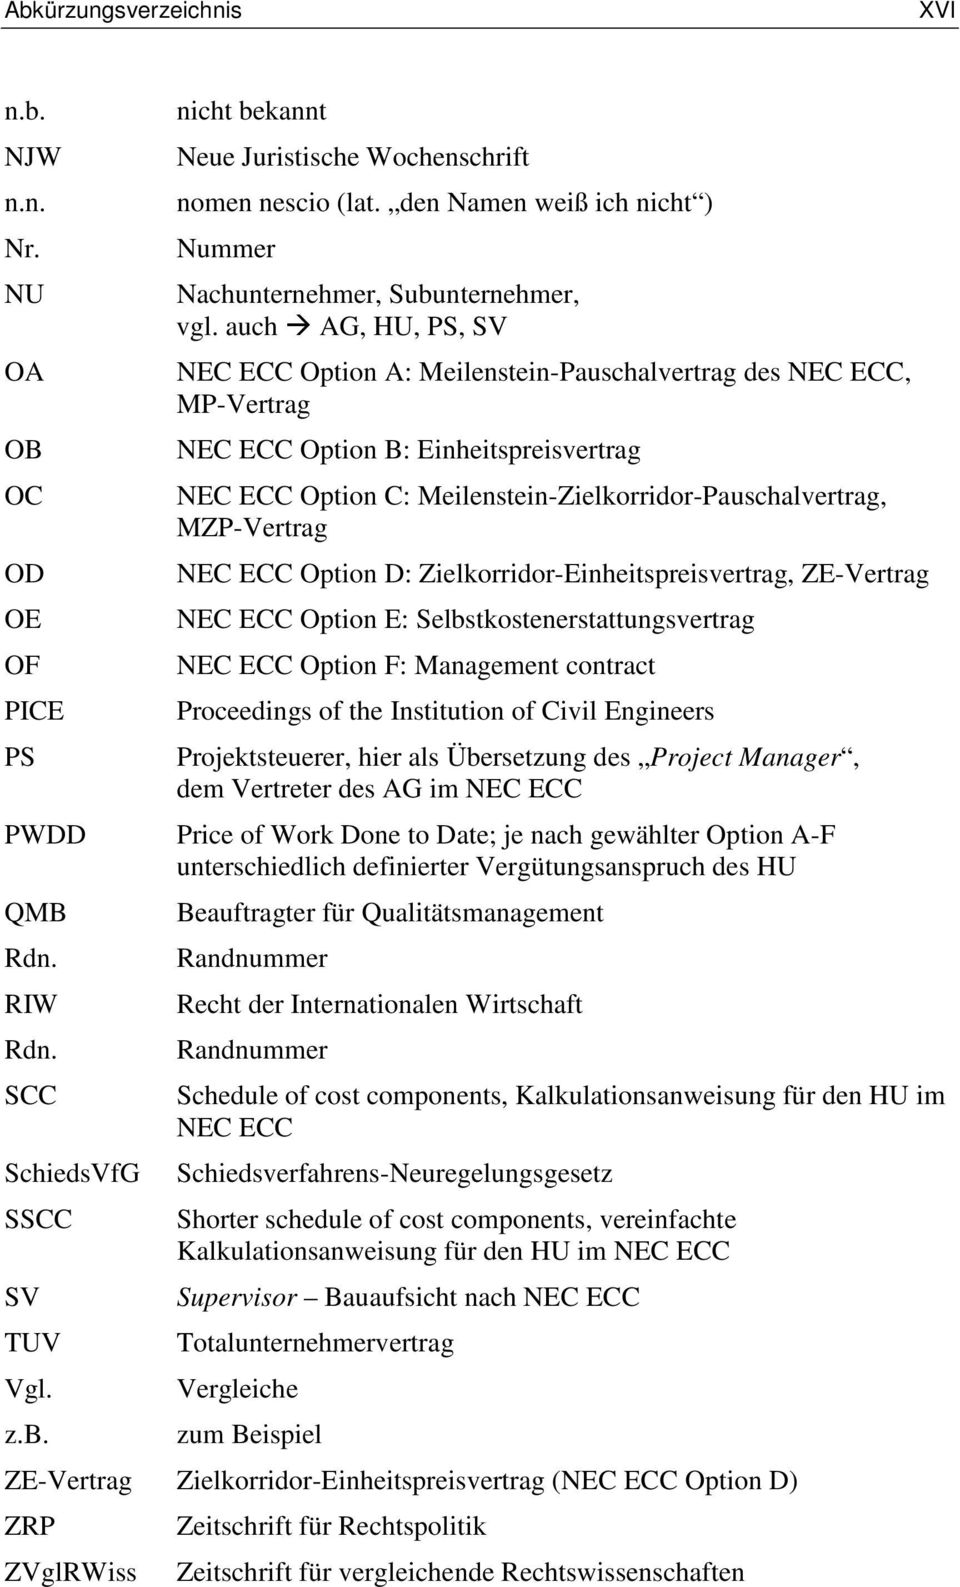 auch AG, HU, PS, SV NEC ECC Option A: Meilenstein-Pauschalvertrag des NEC ECC, MP-Vertrag NEC ECC Option B: Einheitspreisvertrag NEC ECC Option C: Meilenstein-Zielkorridor-Pauschalvertrag,